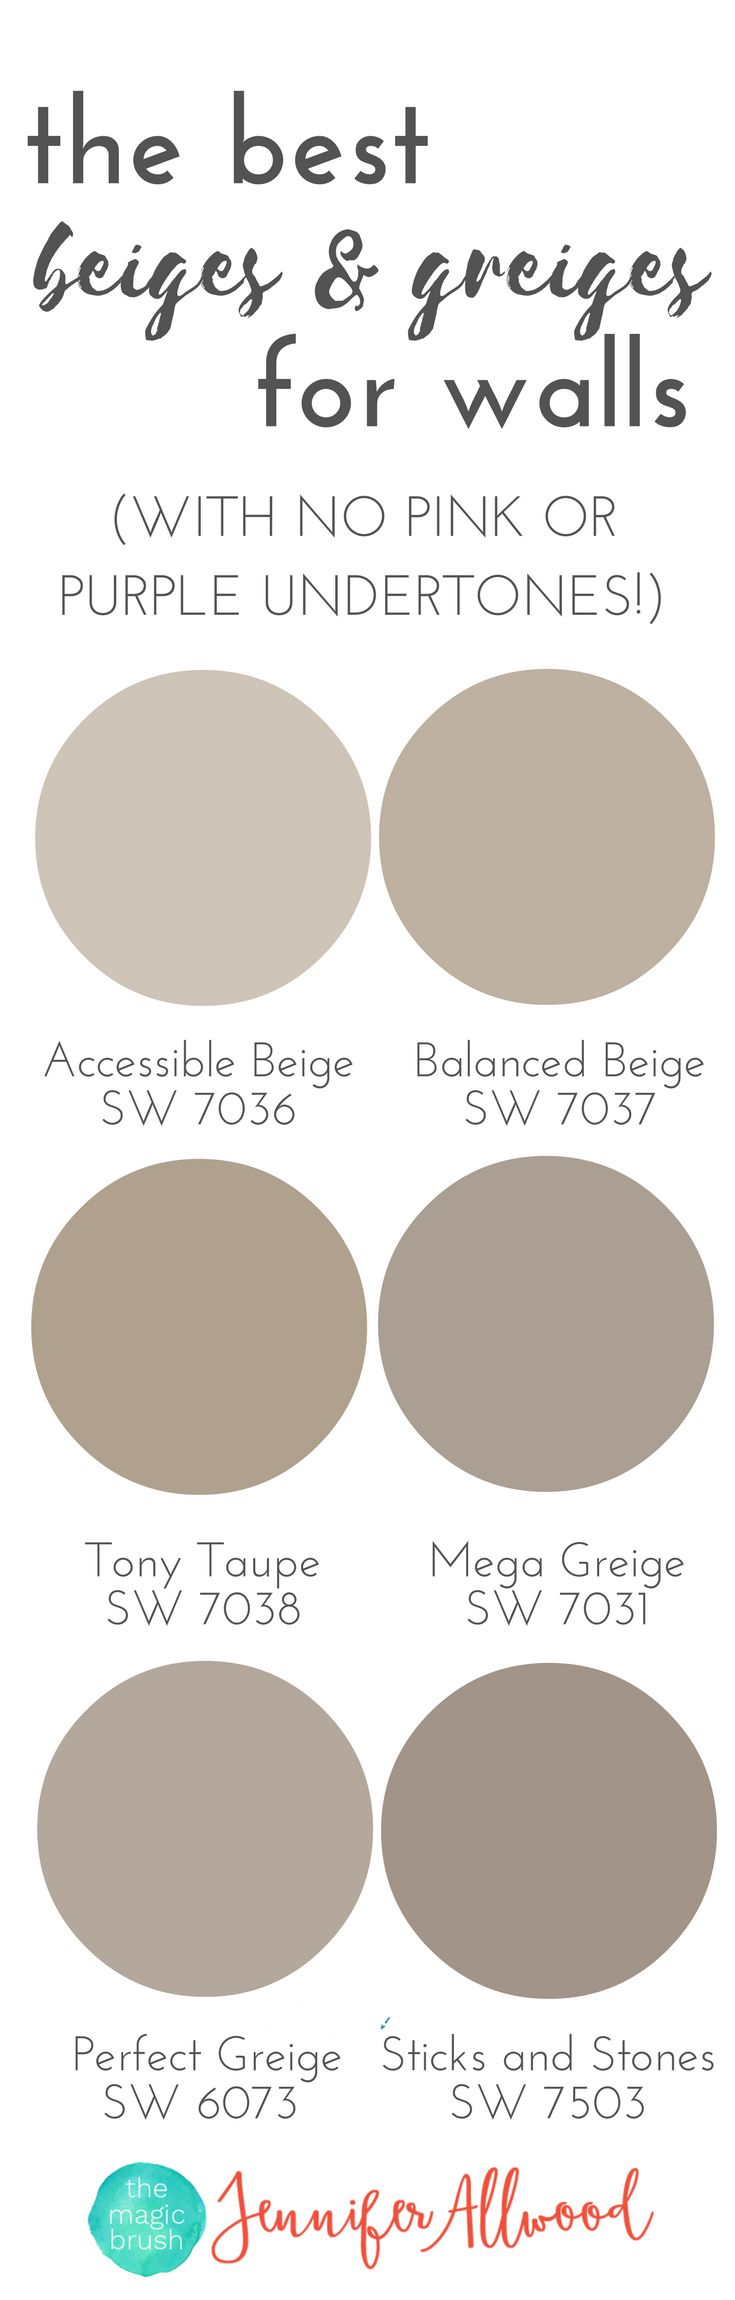 M s de 1000 im genes sobre paint colors en pinterest for Best neutral yellow paint colors